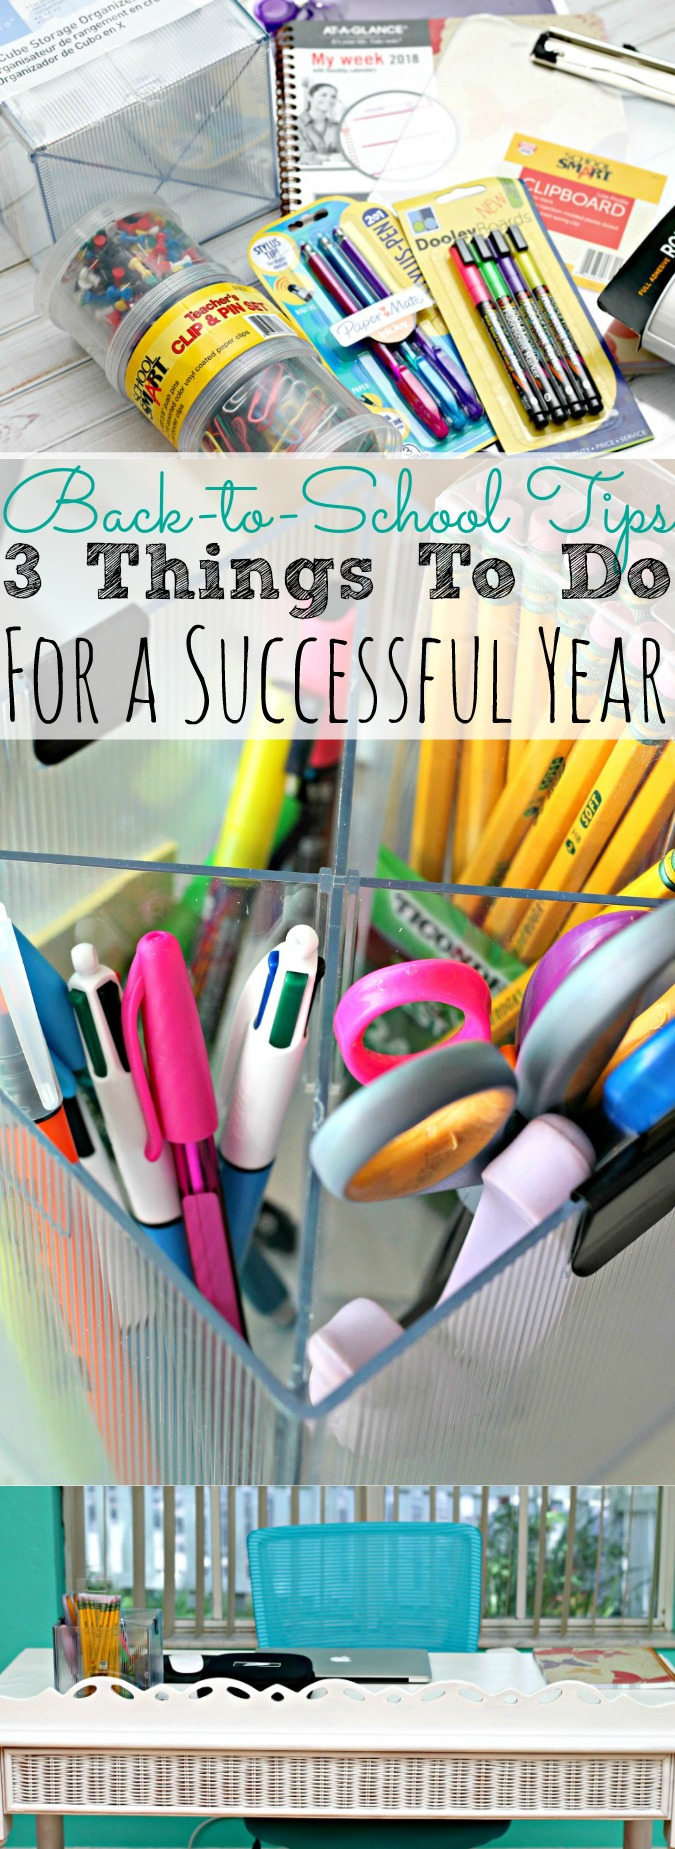 BAck To School Tips For A Successful Year